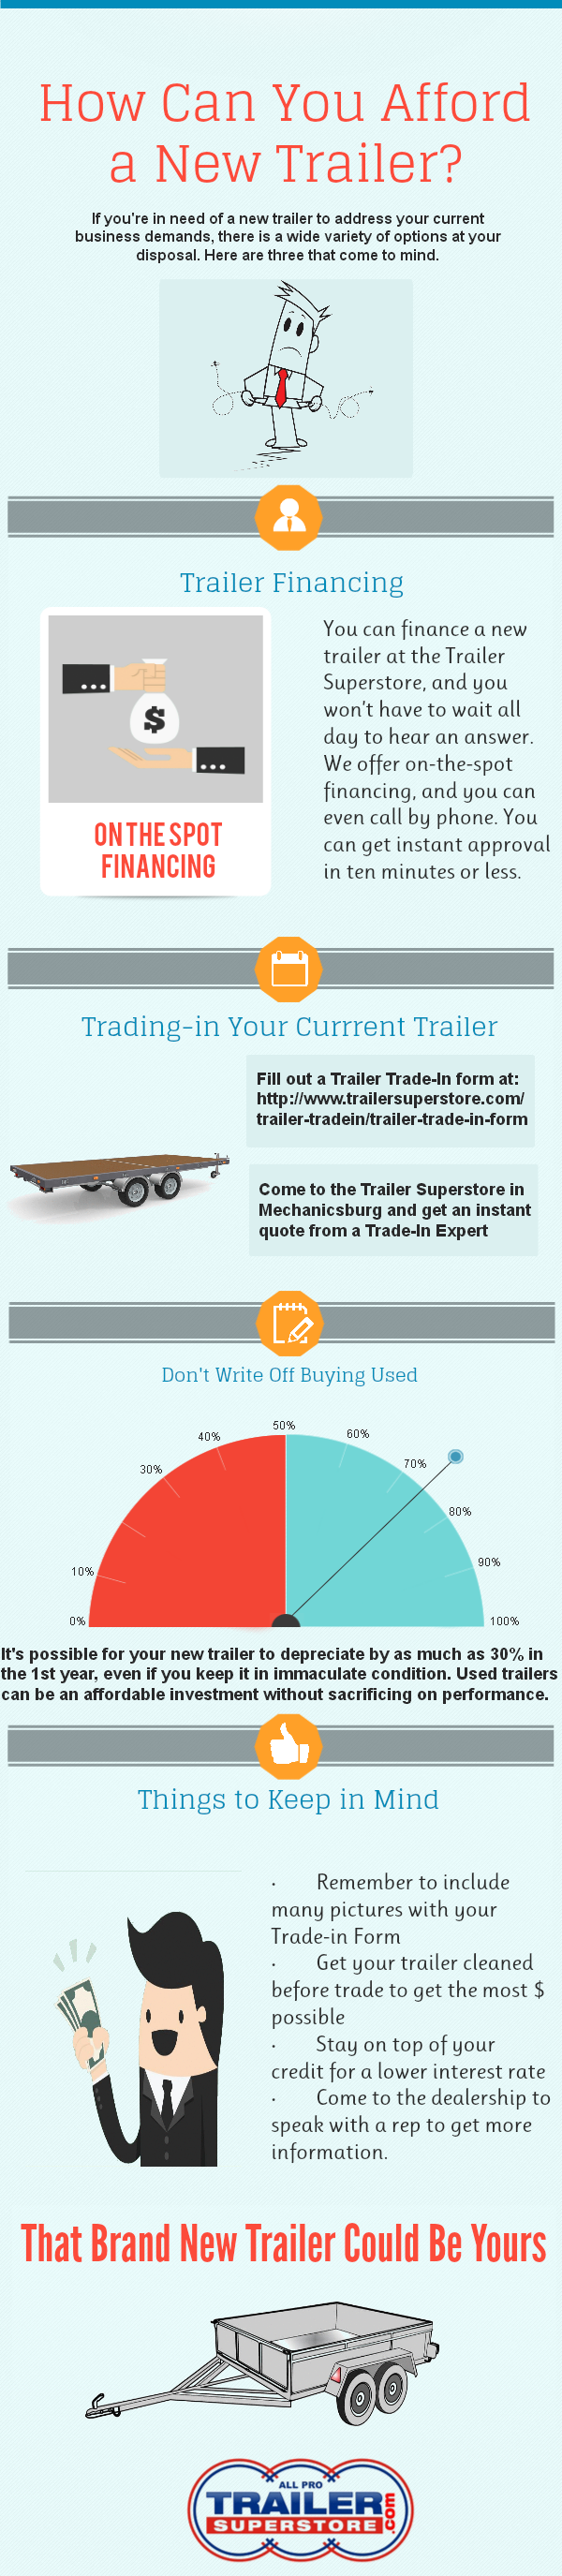 How Can You Afford a New Trailer